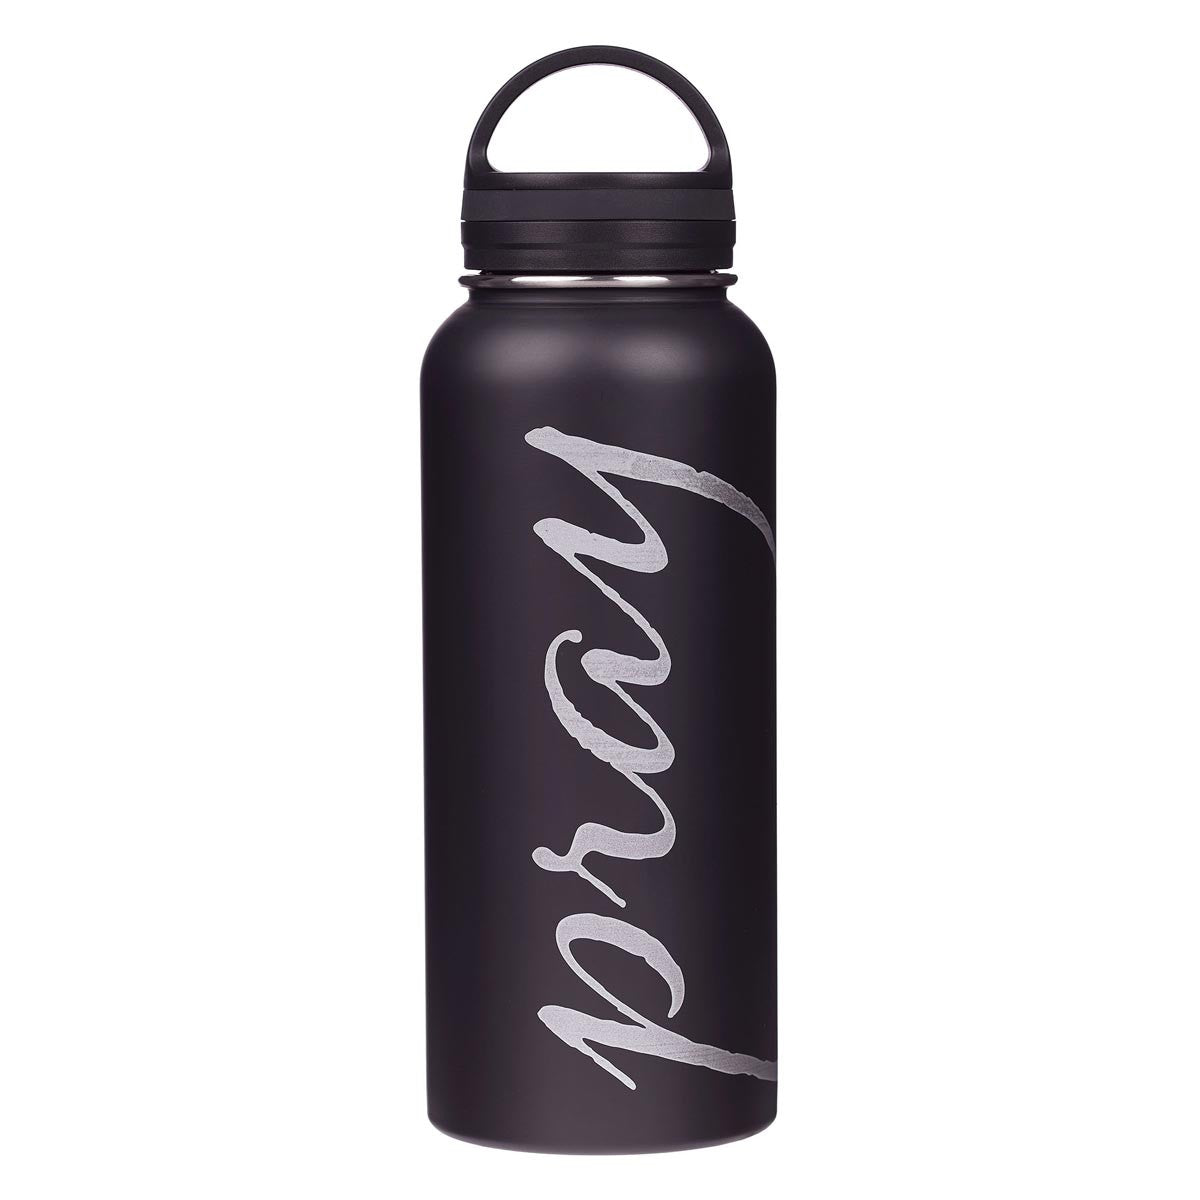 ROCKONLINE | New Creation Church | NCC | Joseph Prince | Water Bottles | Stainless Steel | Scriptures | Drink ware | Thermal Flask | Insulated Bottles | Christian Art Gifts | Christian Gifts | Small Gifts | Rock Bookshop | Rock Bookstore | Star Vista | Free Delivery for Singapore Orders above $50.